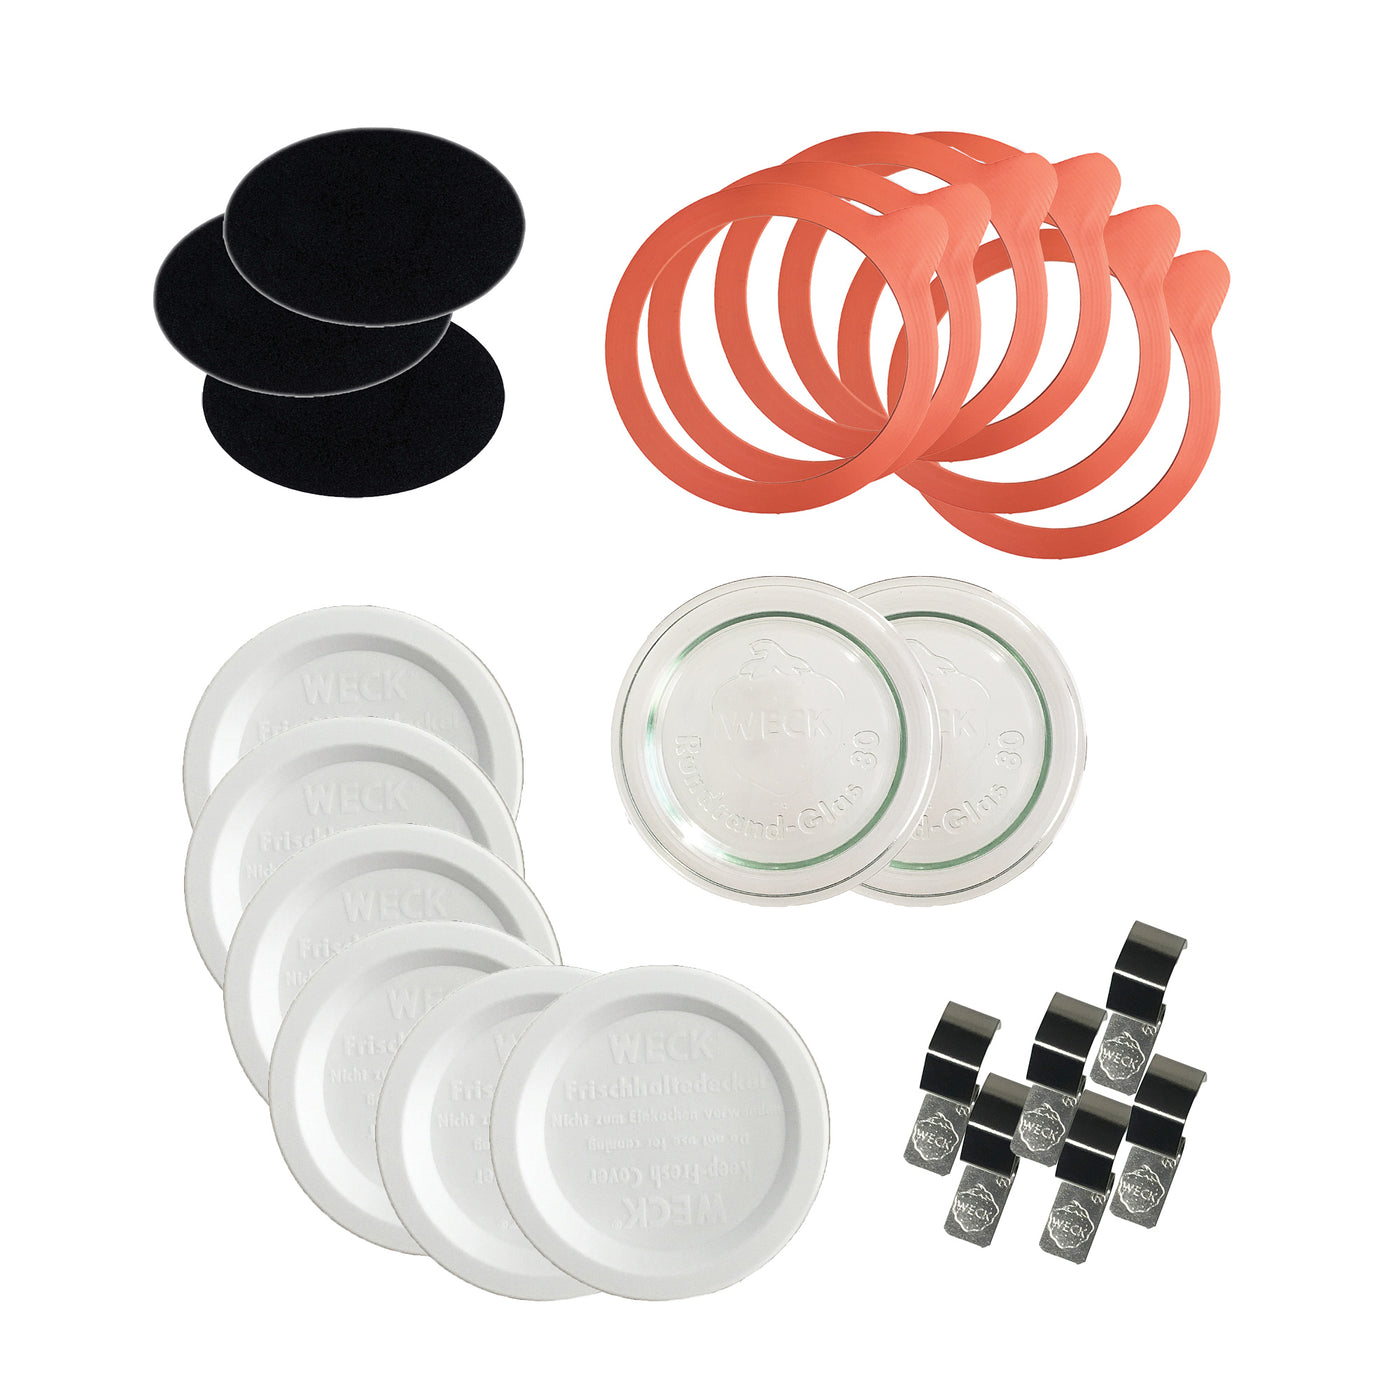 WECK Replacement Kit for 80mm (Medium) Weck Jars